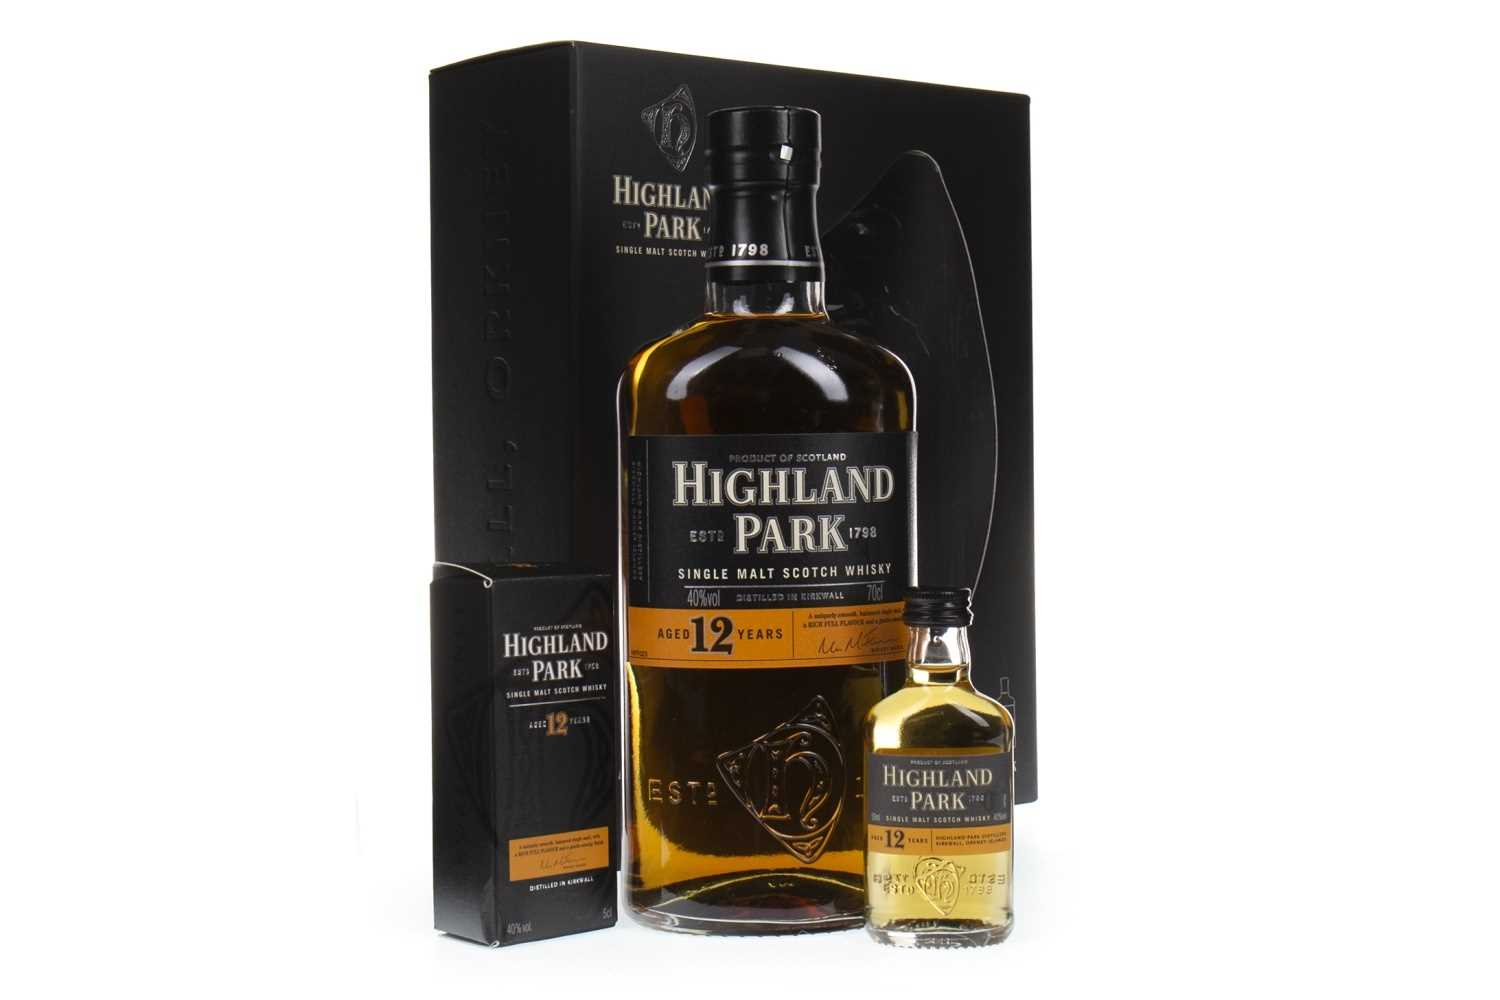 Lot 306-HIGHLAND PARK AGED 12 YEARS 70CL GIFT BOX AND 5CL MINIATURE